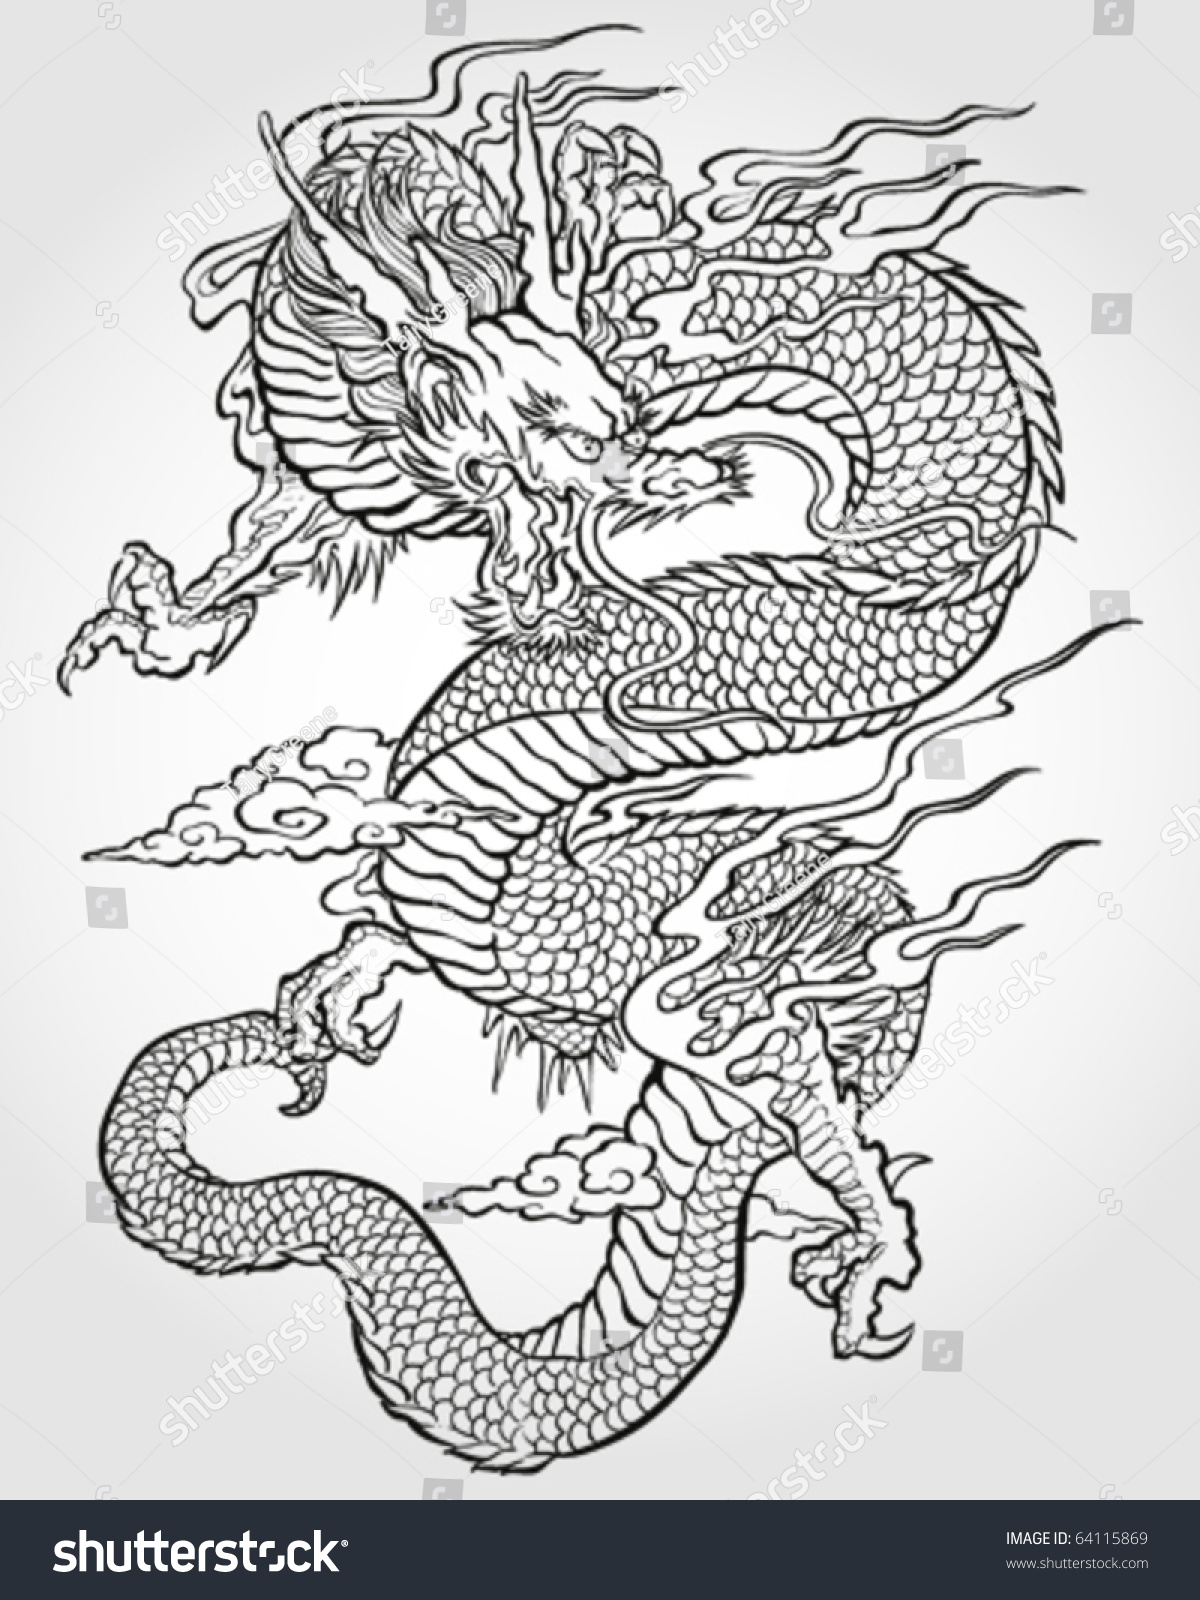 Tradition Asian Dragon Illustration Stock Vector 64115869